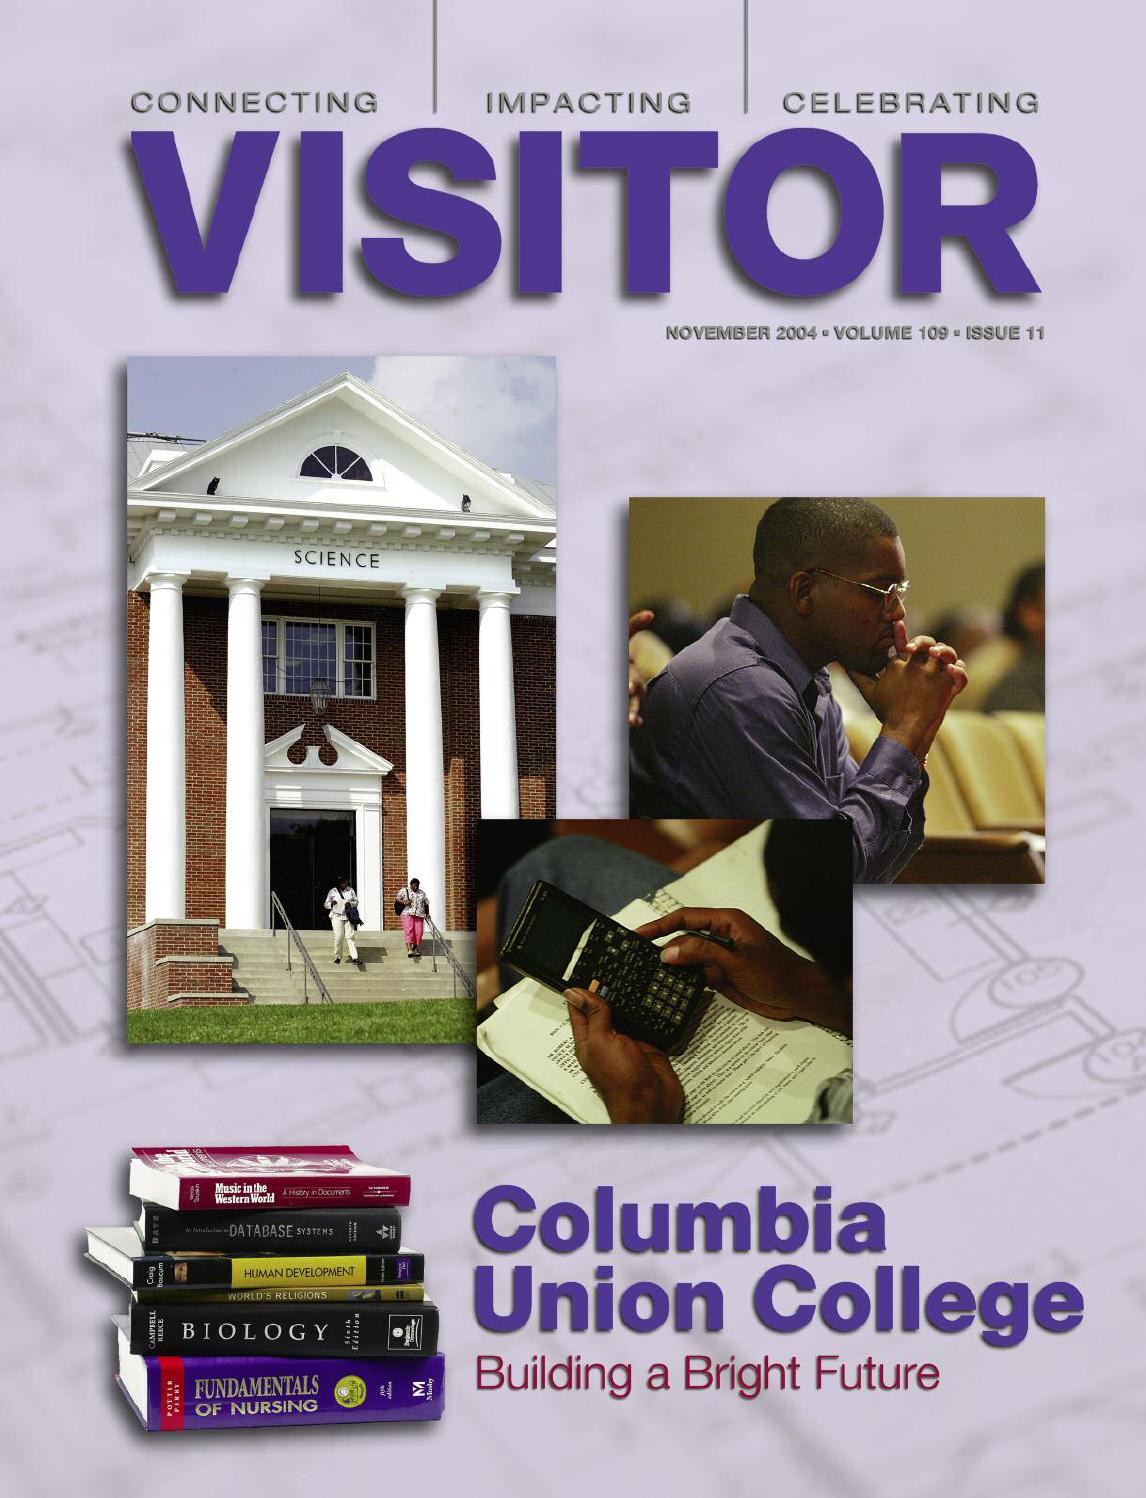 Columbia union visitor november 2004 by columbia union conference issuu